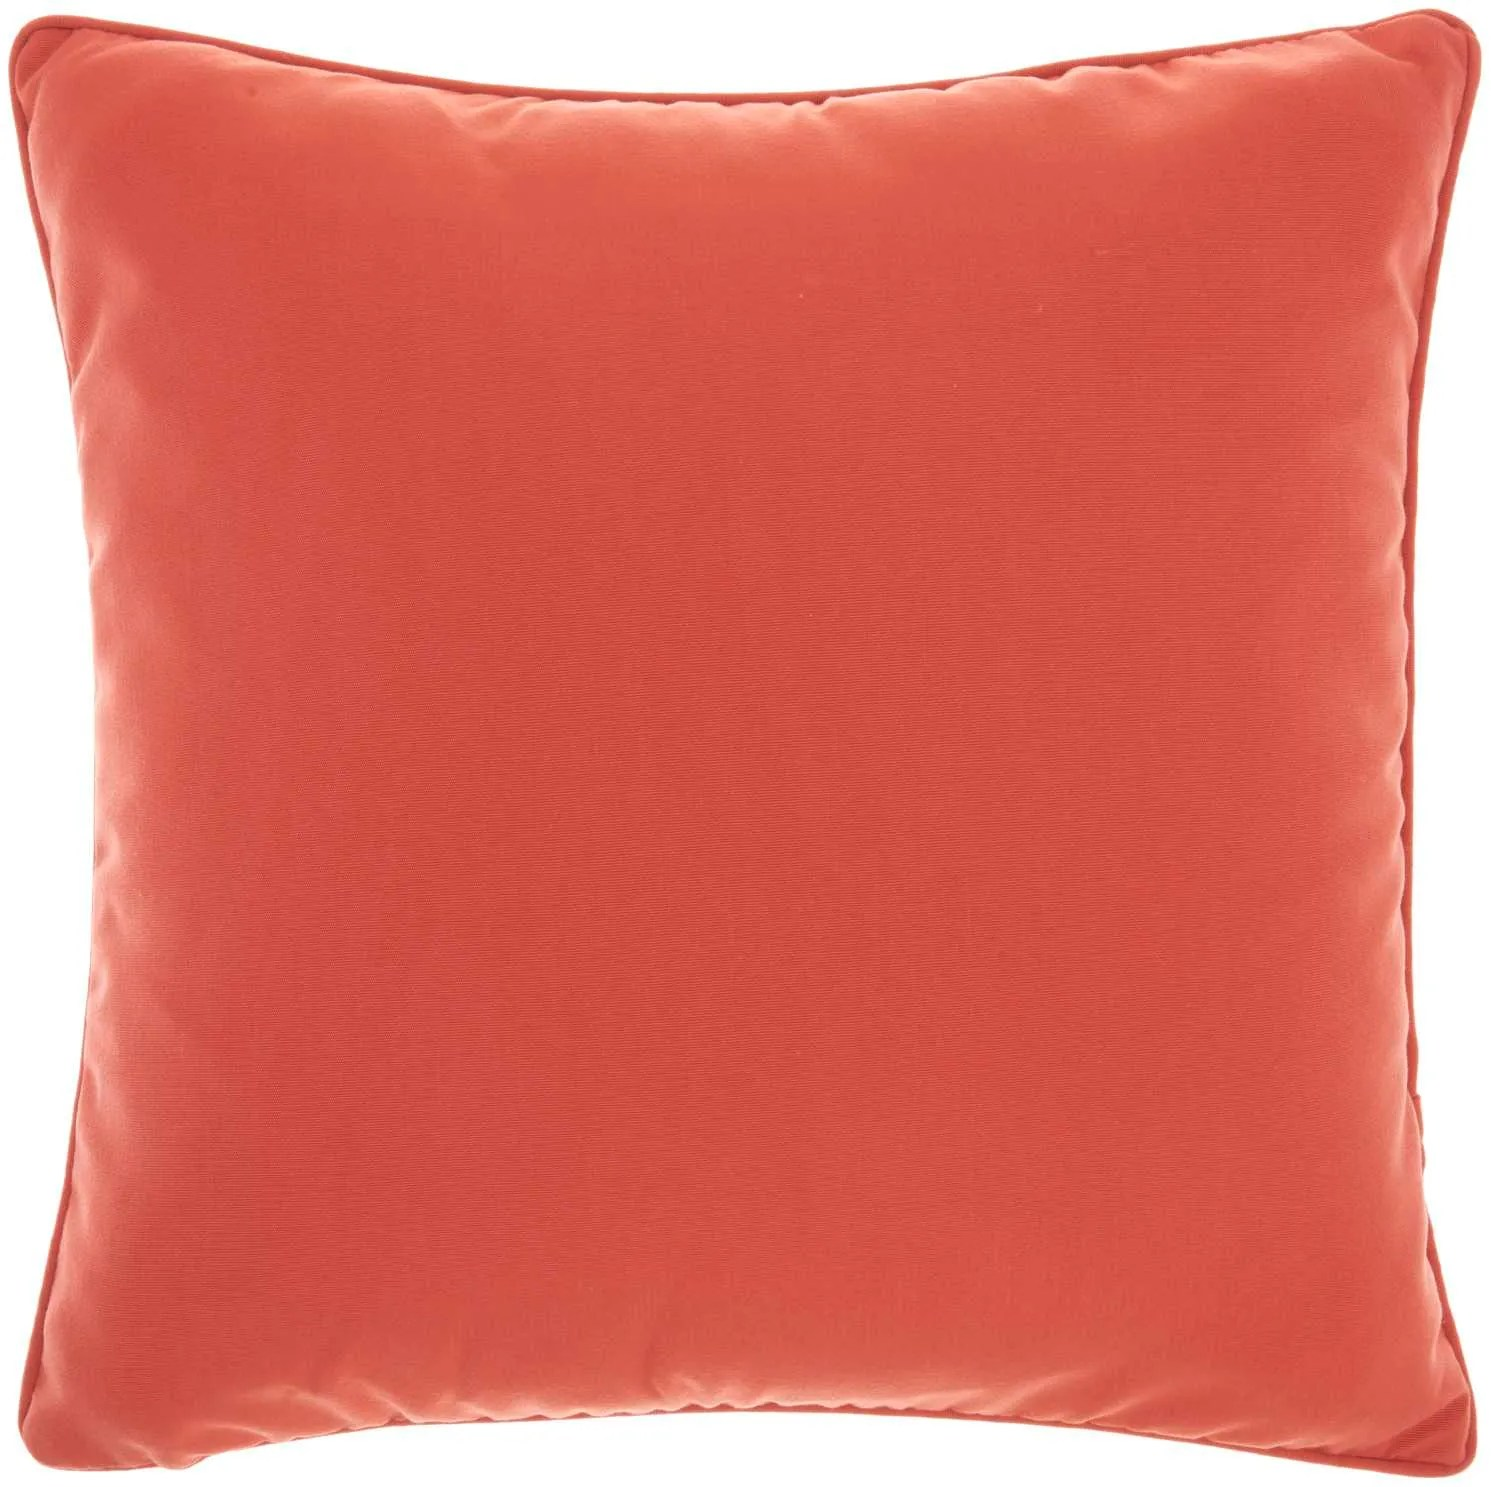 outdoor pillows l9090 coral 18